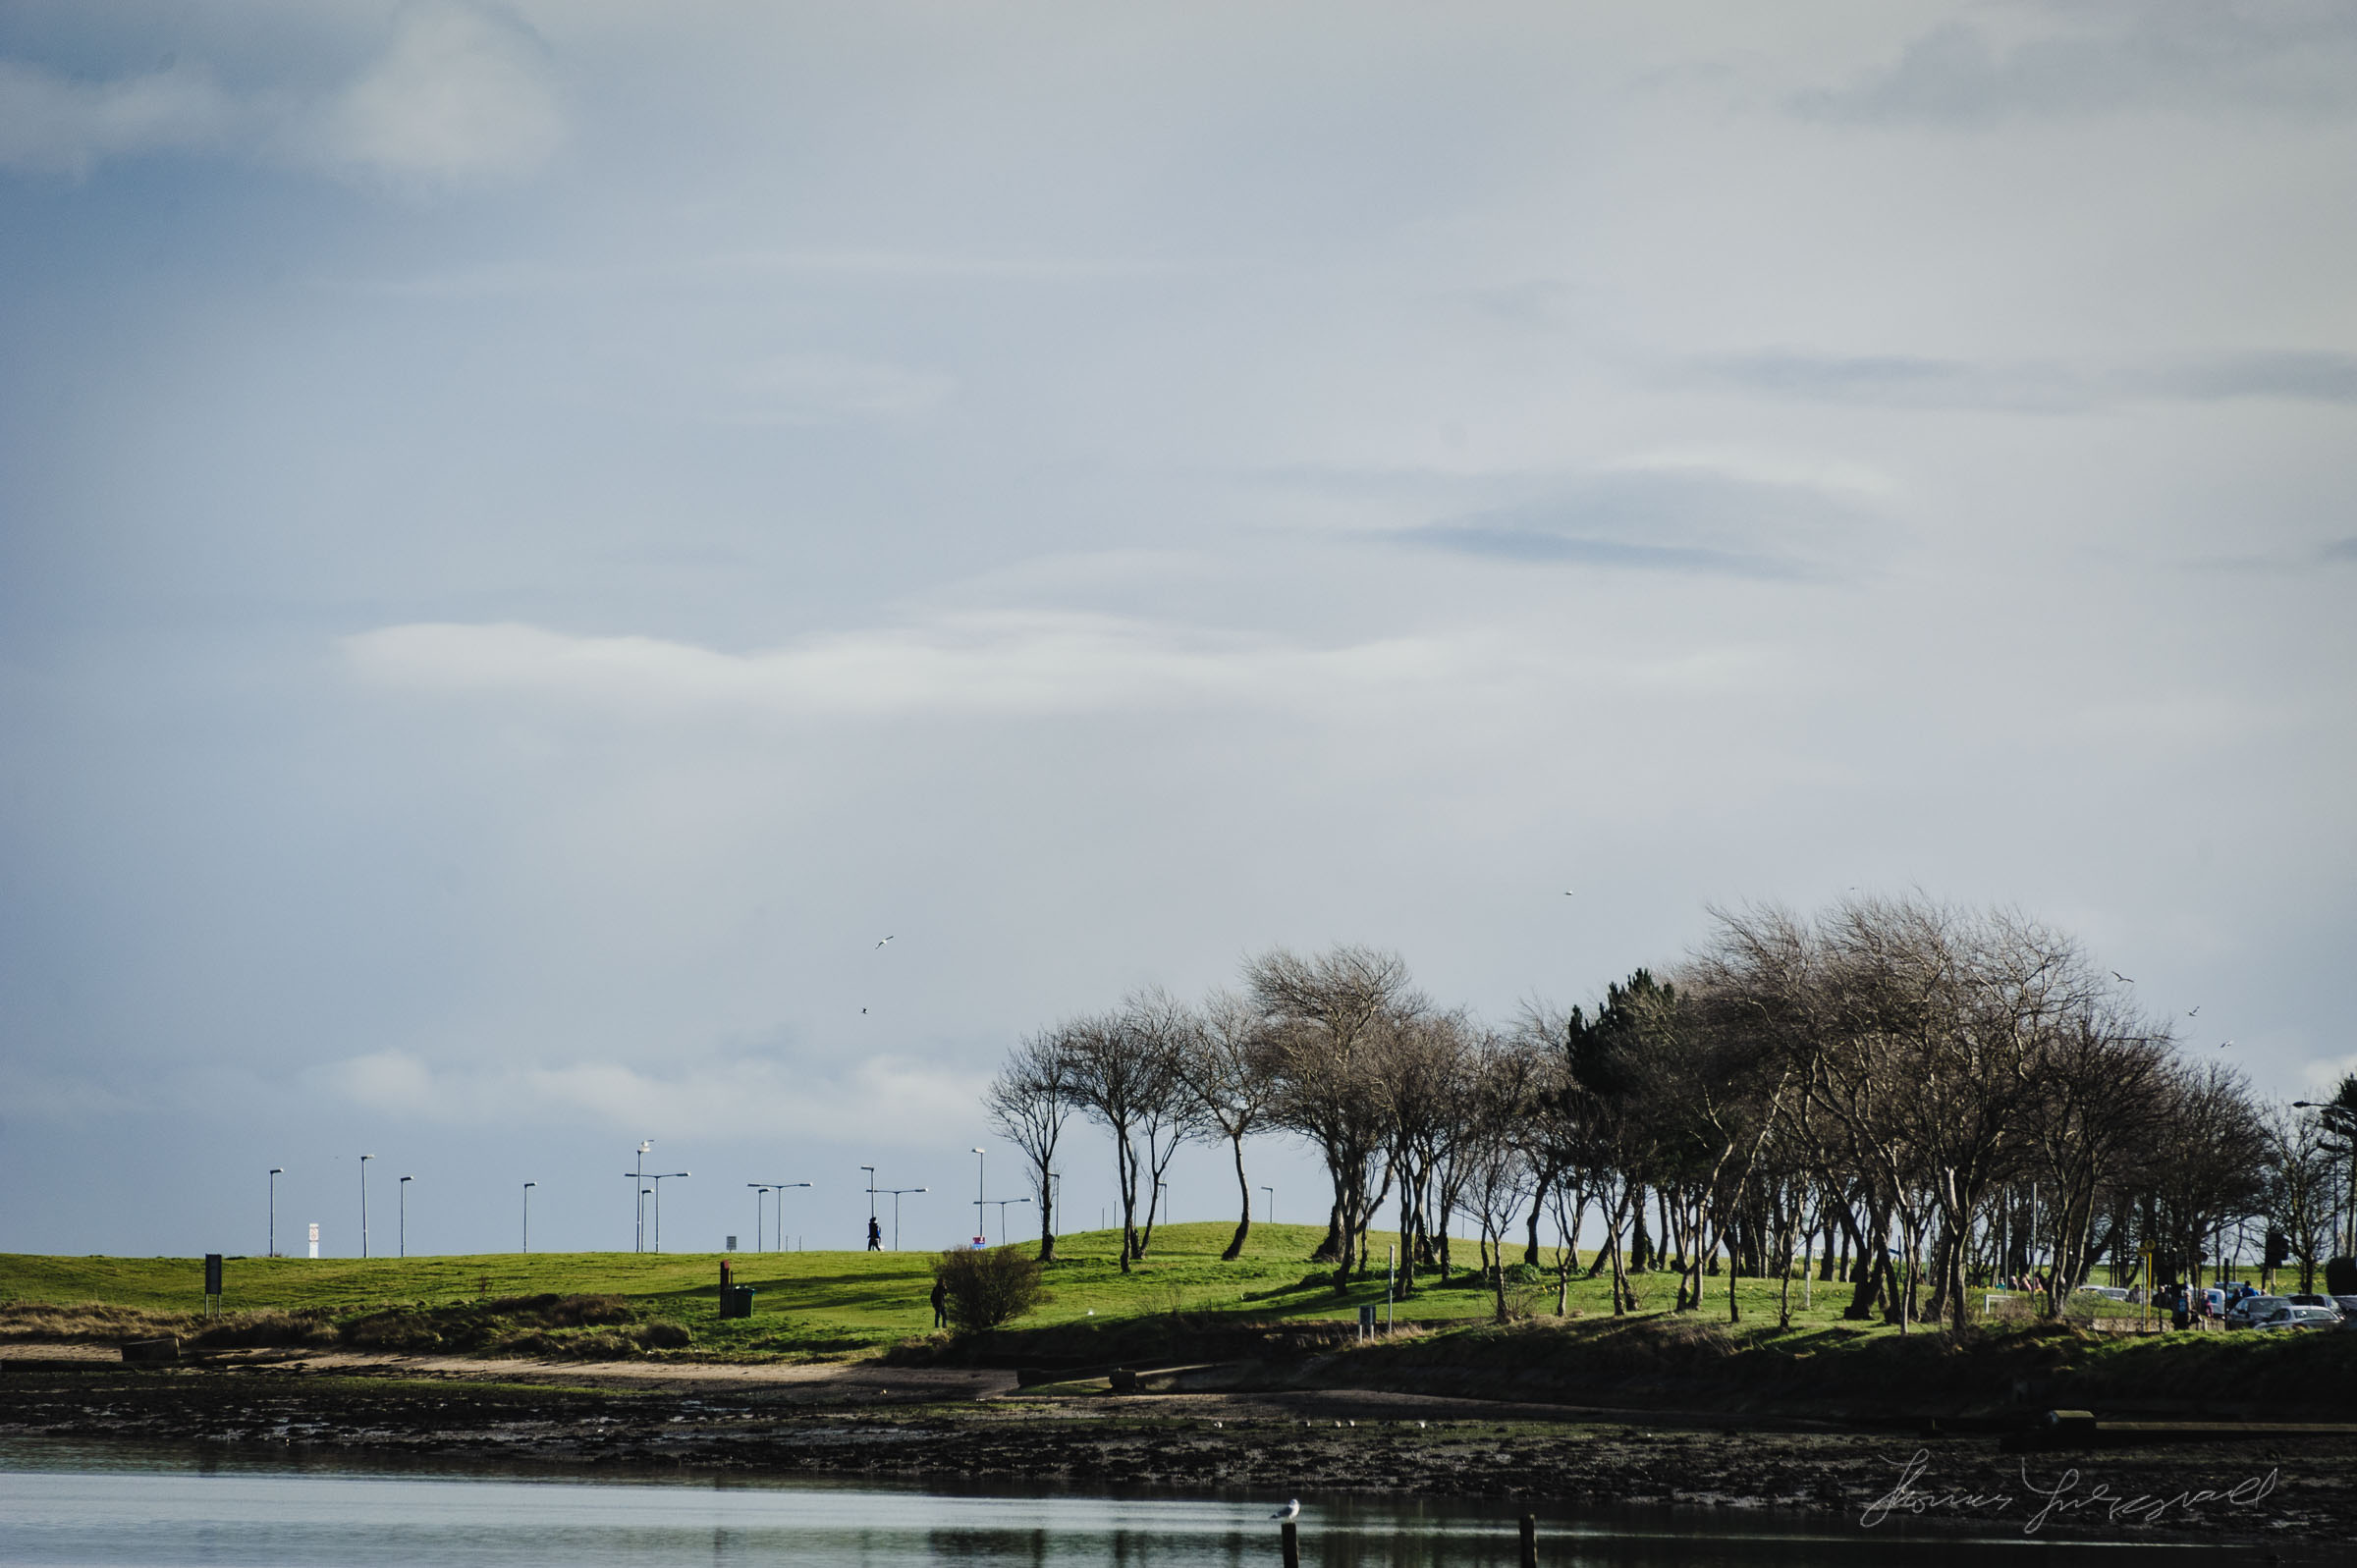 Tree Lined hills by the Water